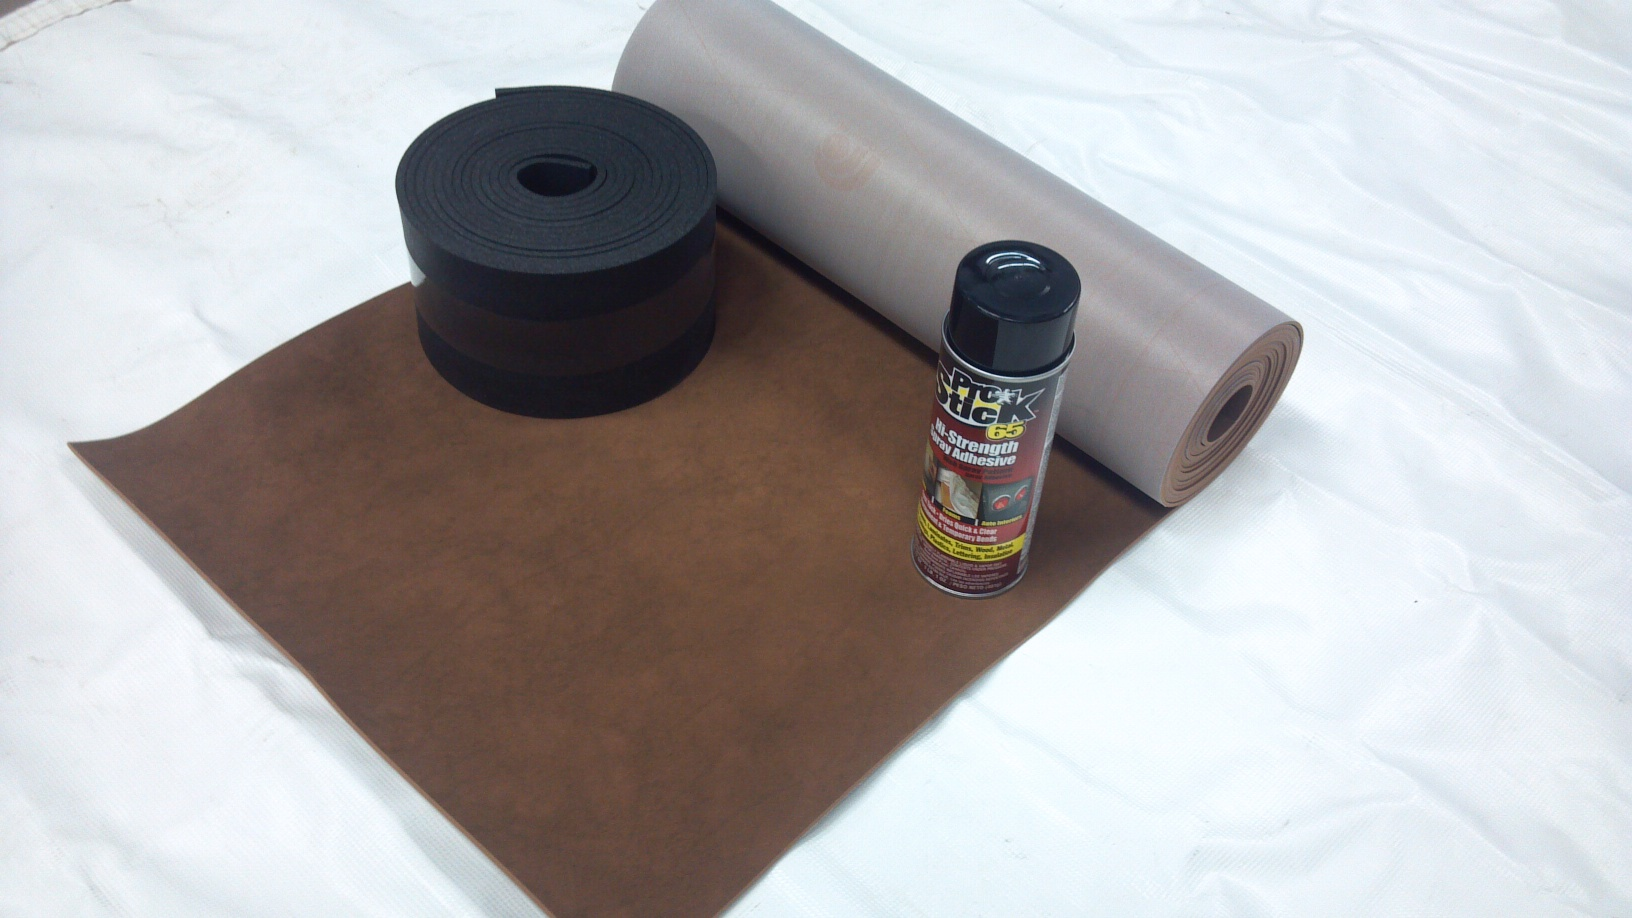 Generic Balance Beam Recovery Kit Nra Gym Supply